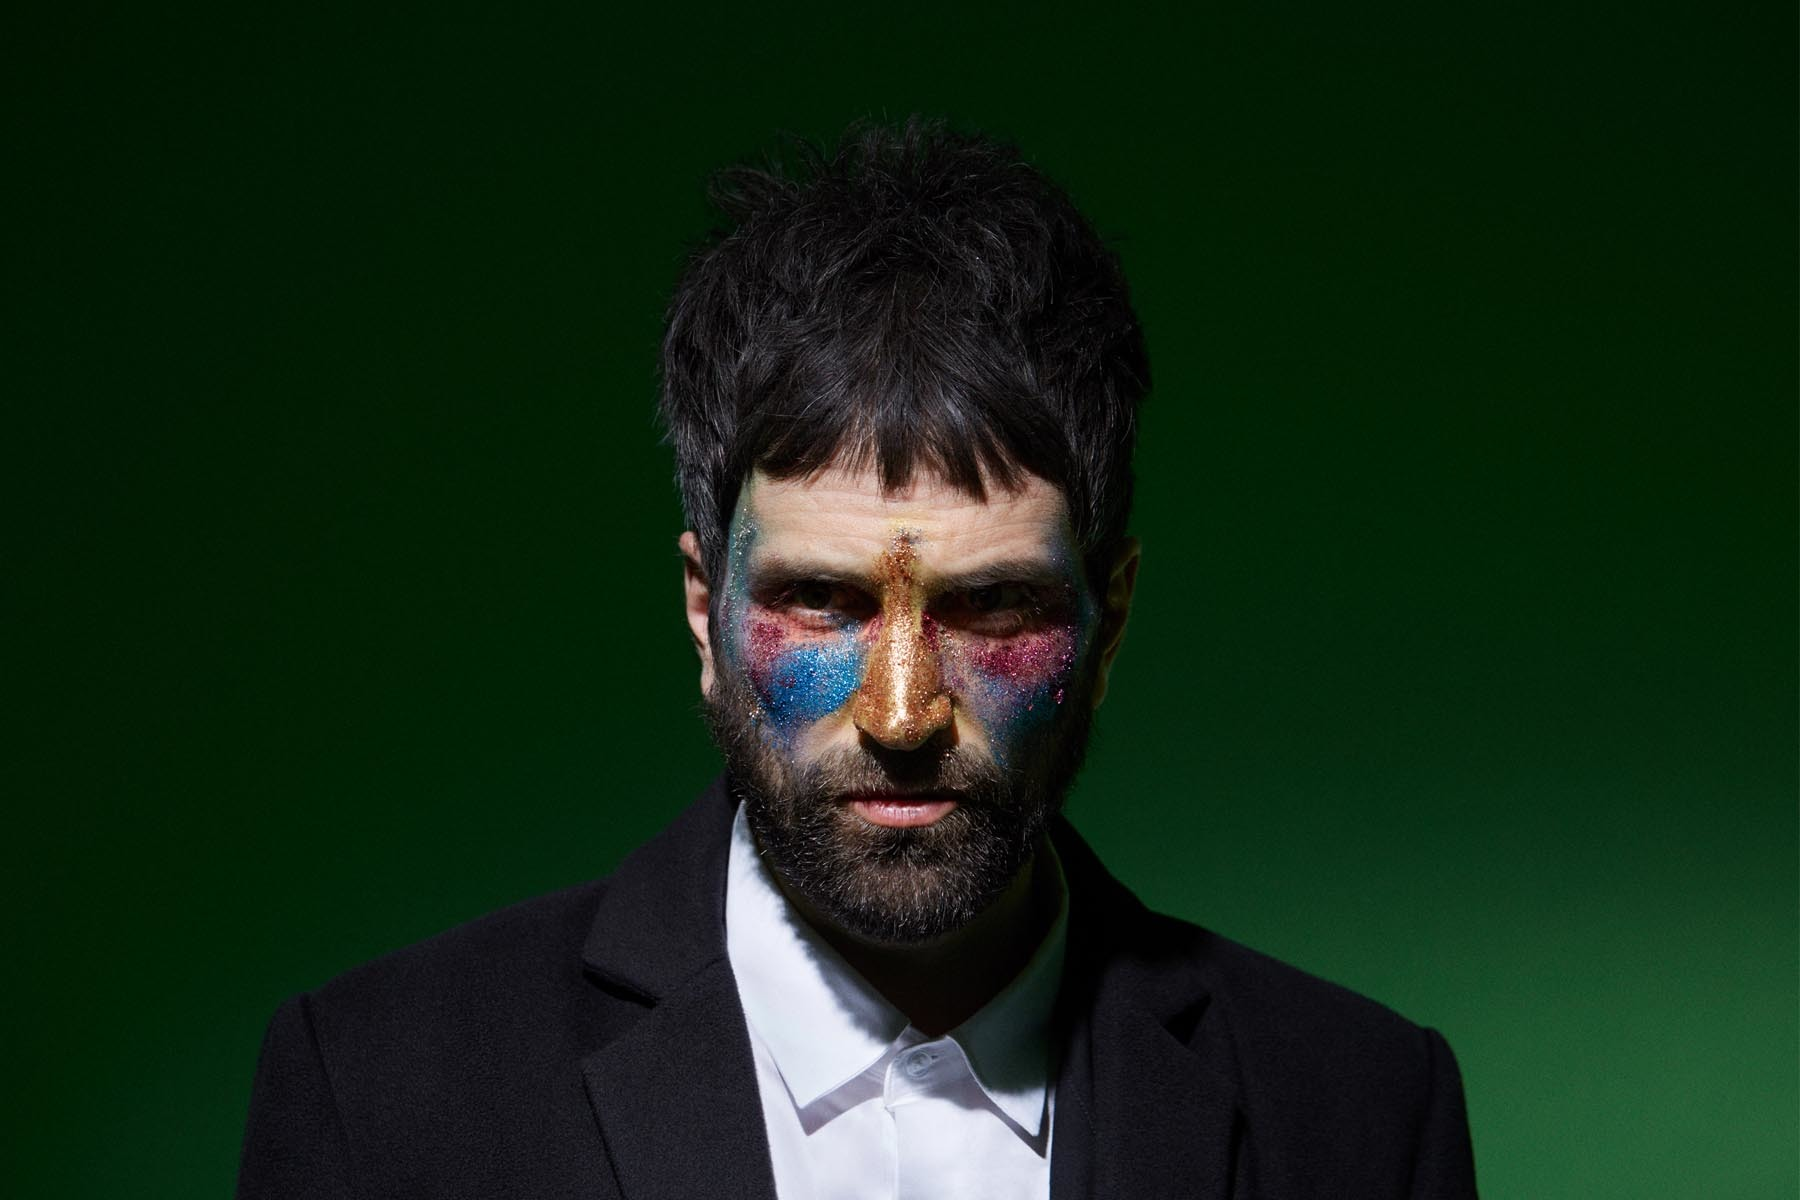 Kasabian's Serge Pizzorno launches new project The S.L.P., shares new track